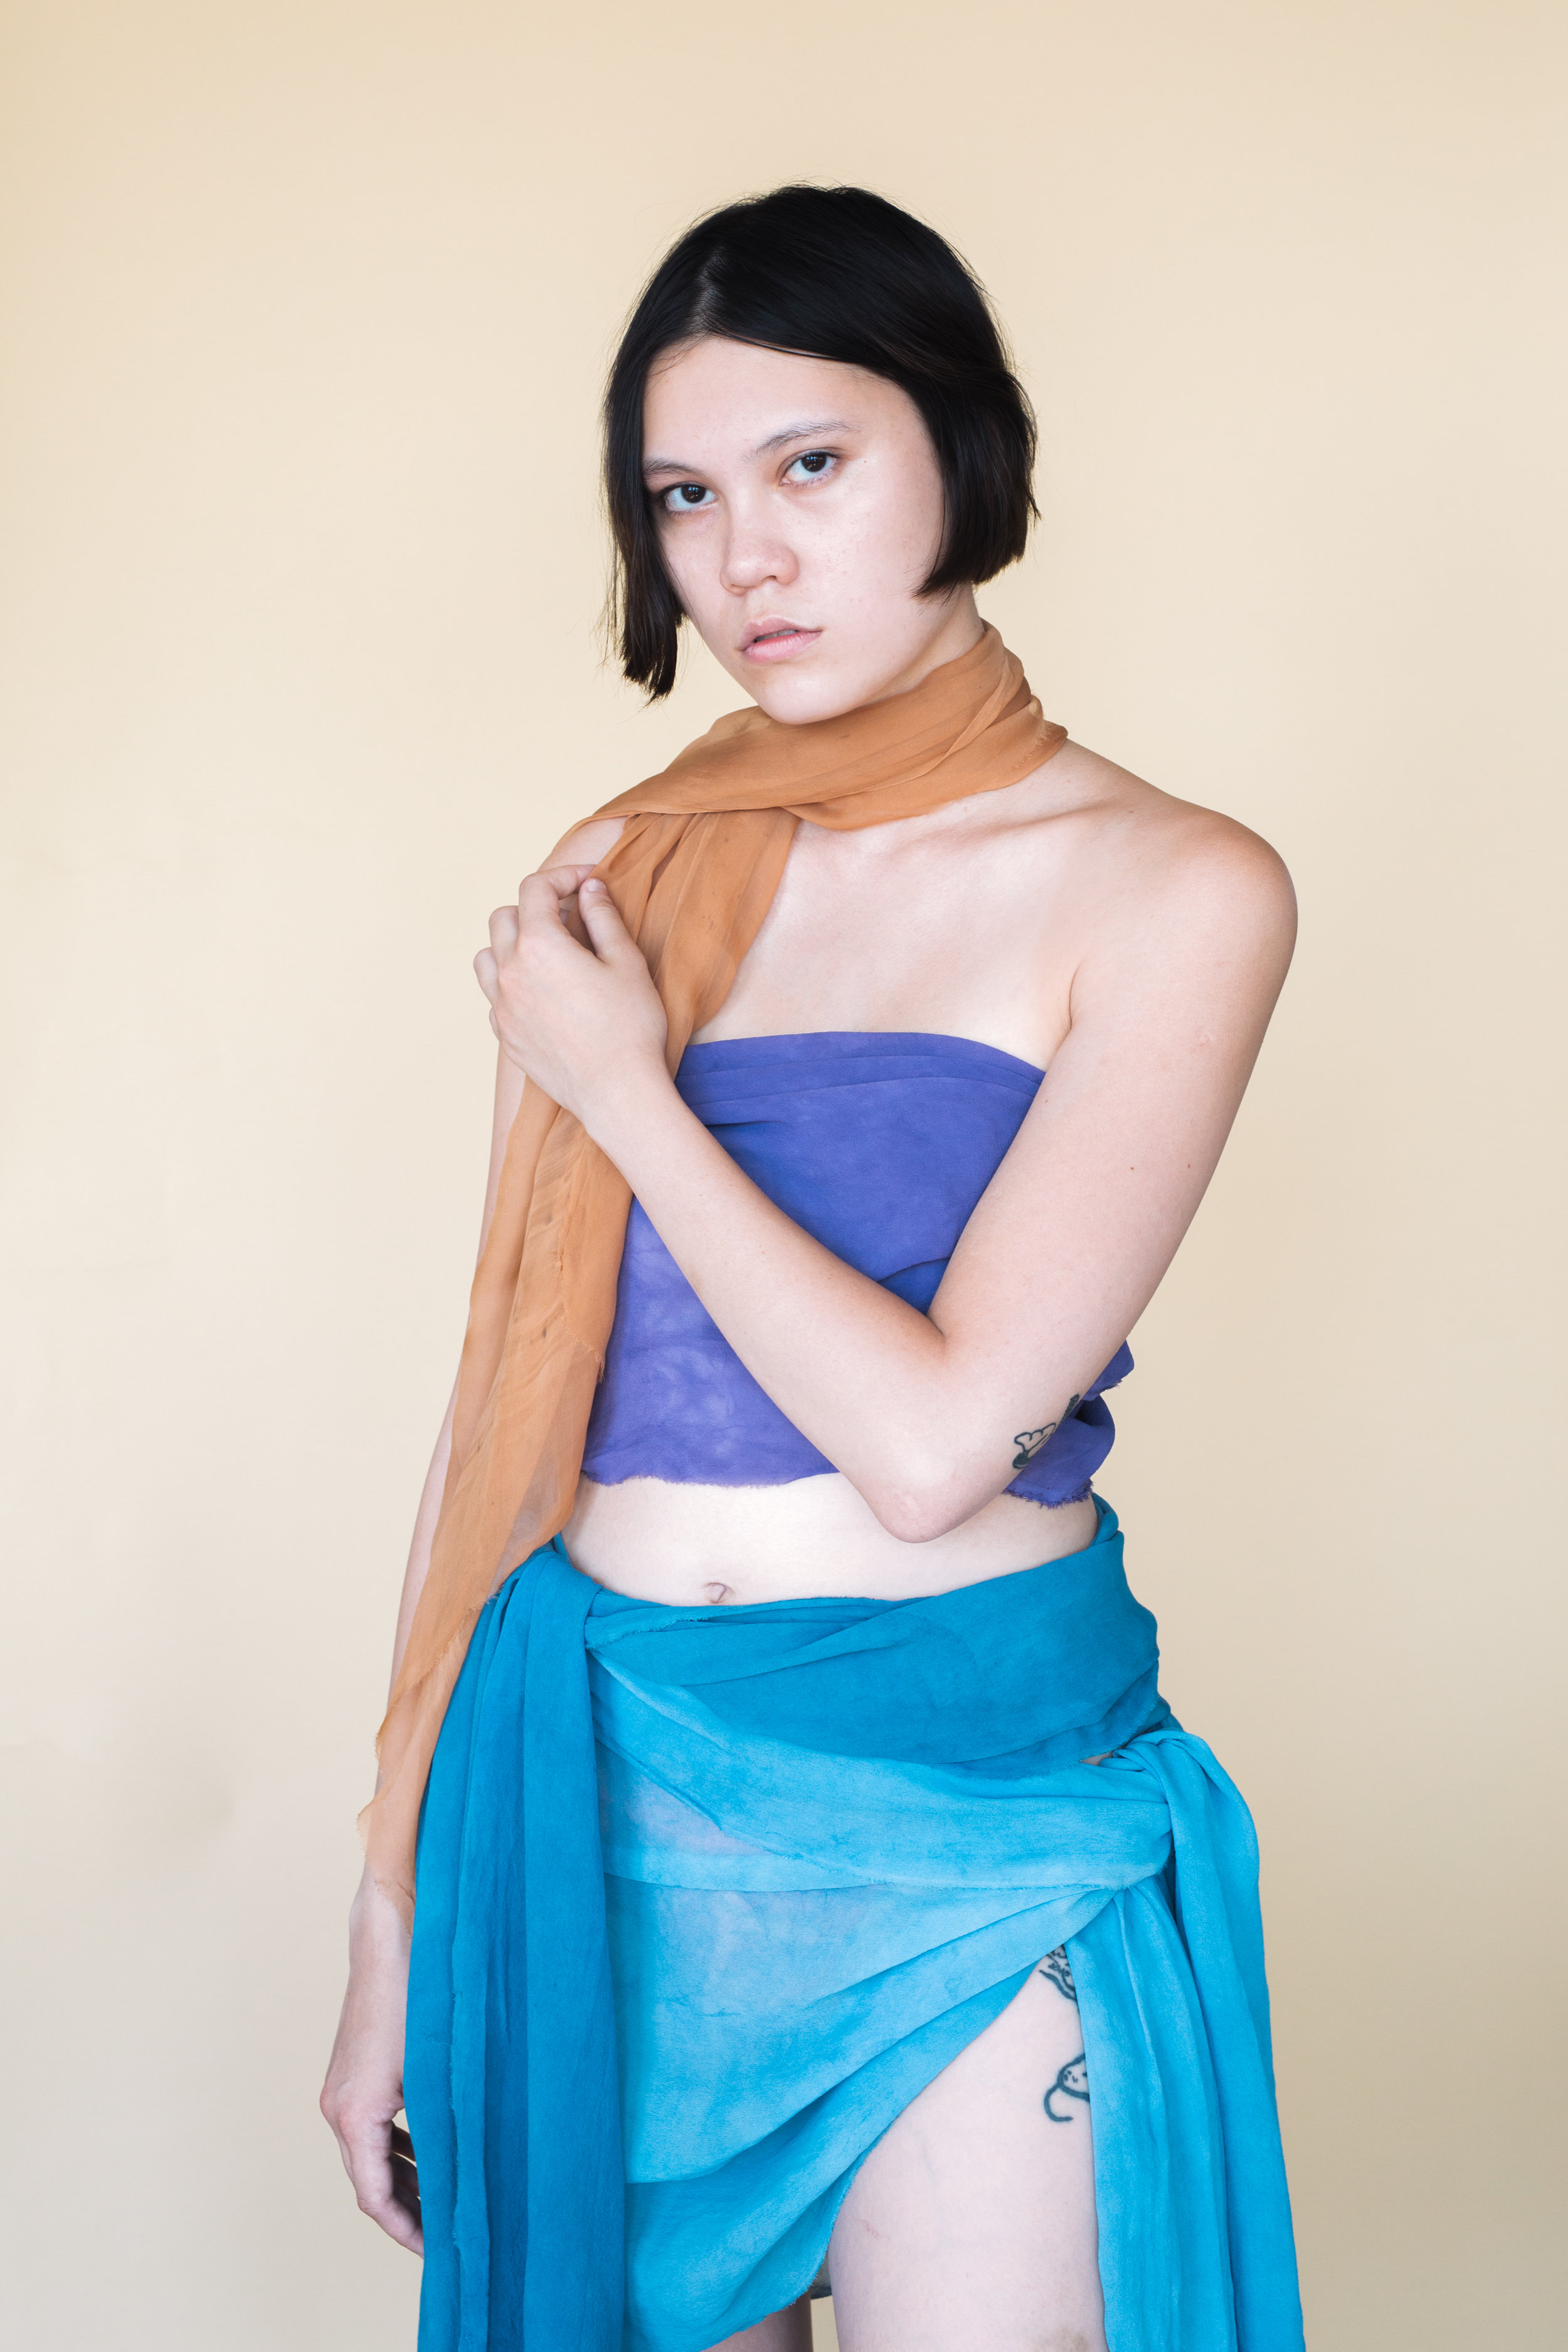 Table runners styled as a scarf, sarong and top.